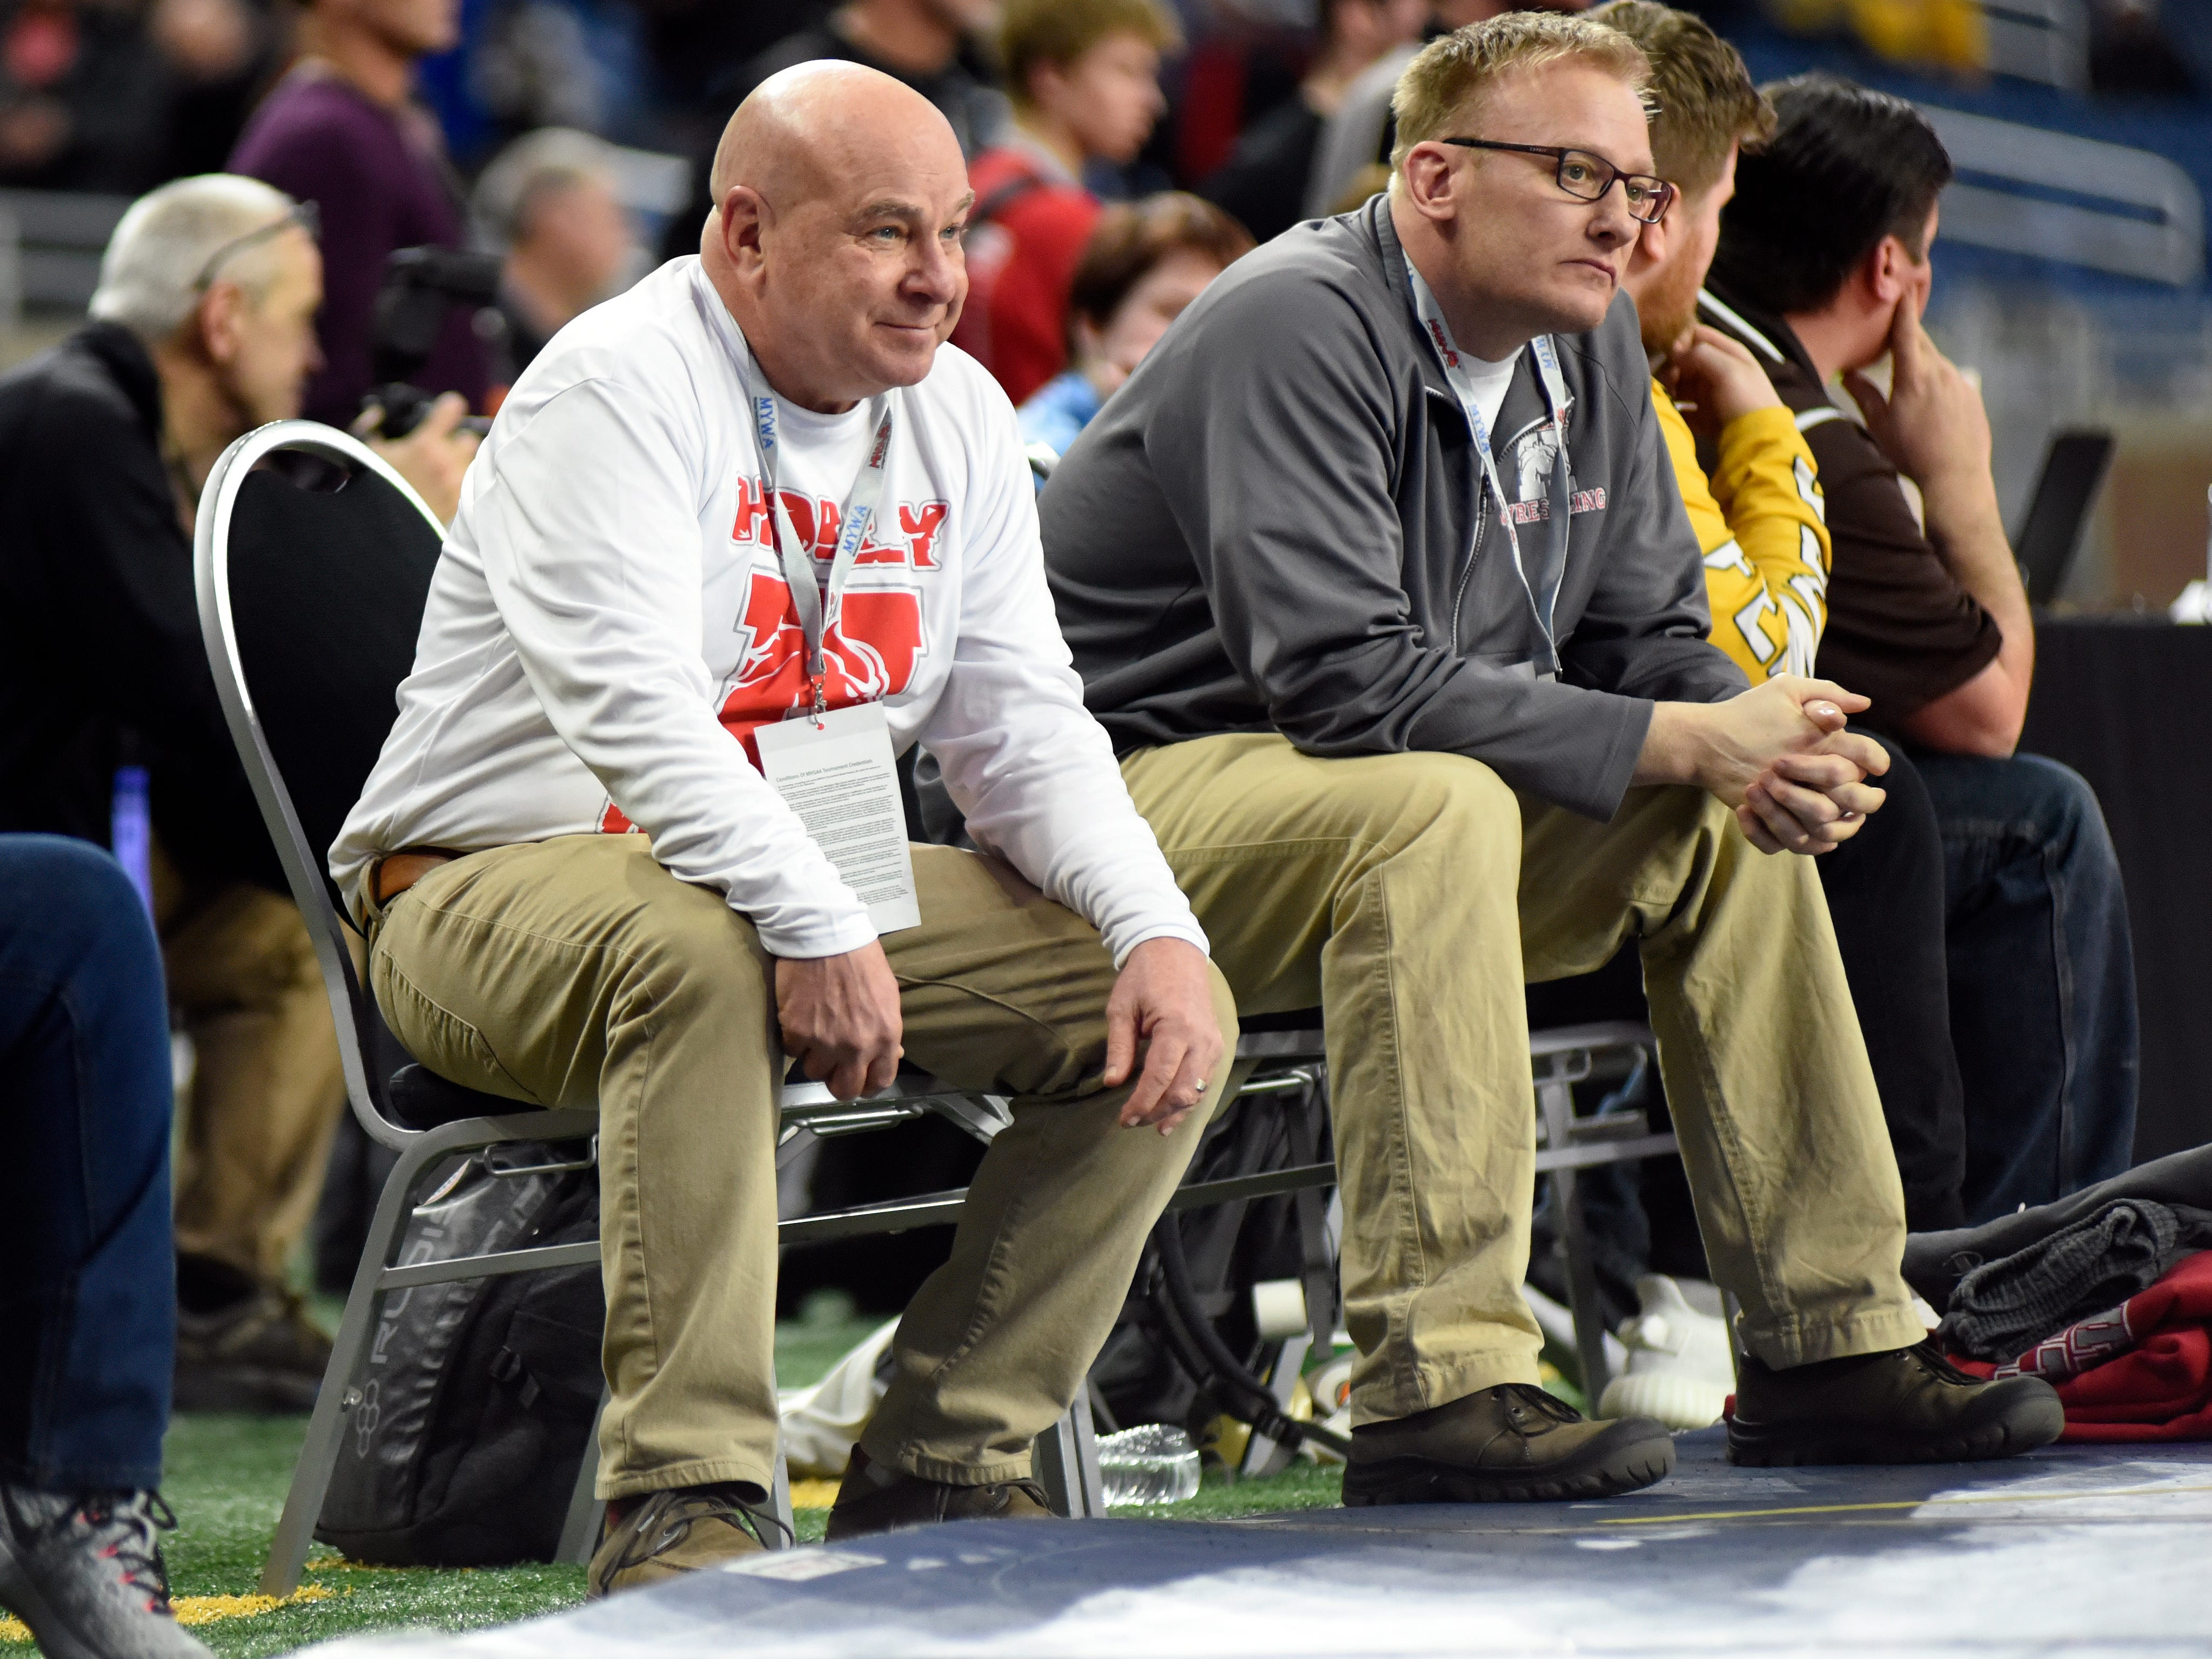 Holly High School wrestling head coach Don Pluta, left, watches his wrestlers compete in the Division 1 semifinals.